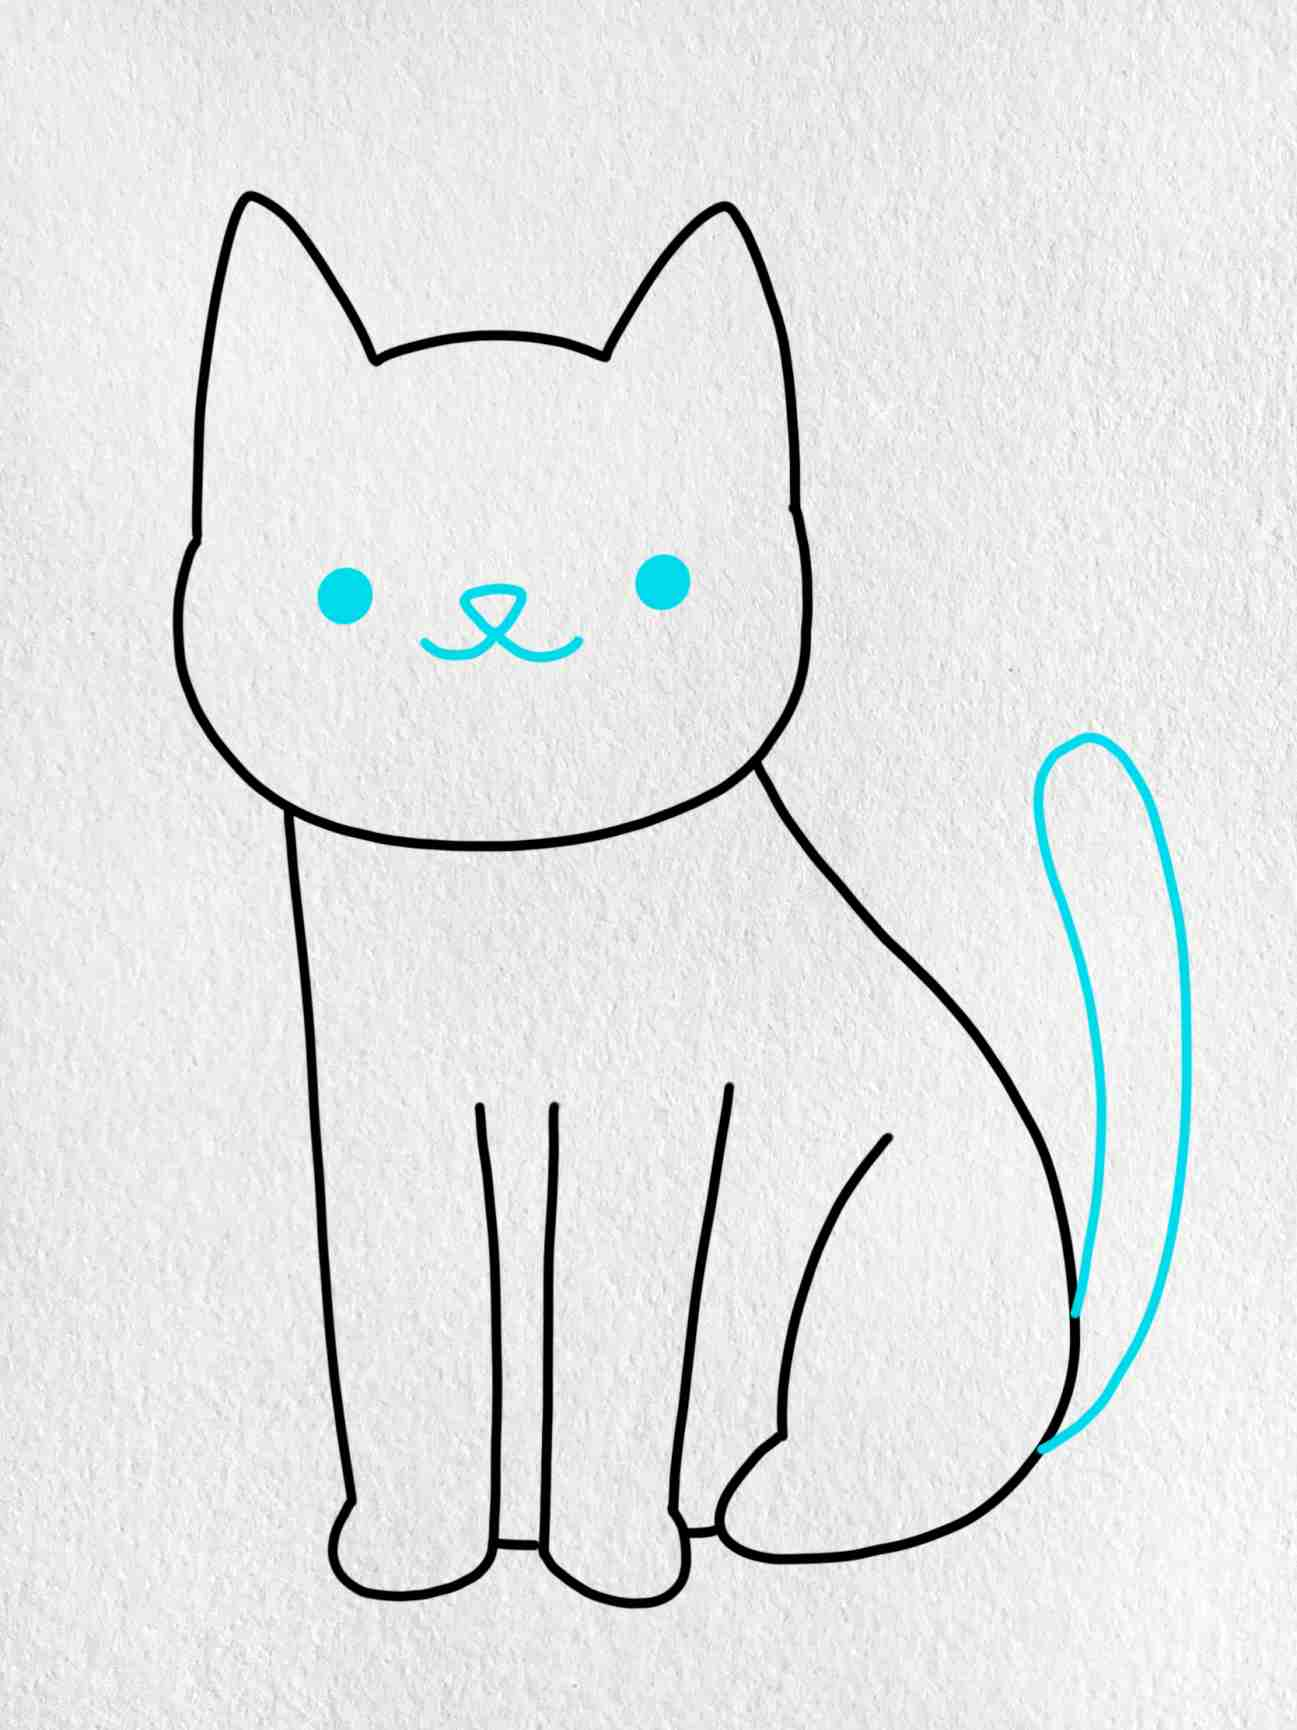 Cat Drawing For Kids: Step 4